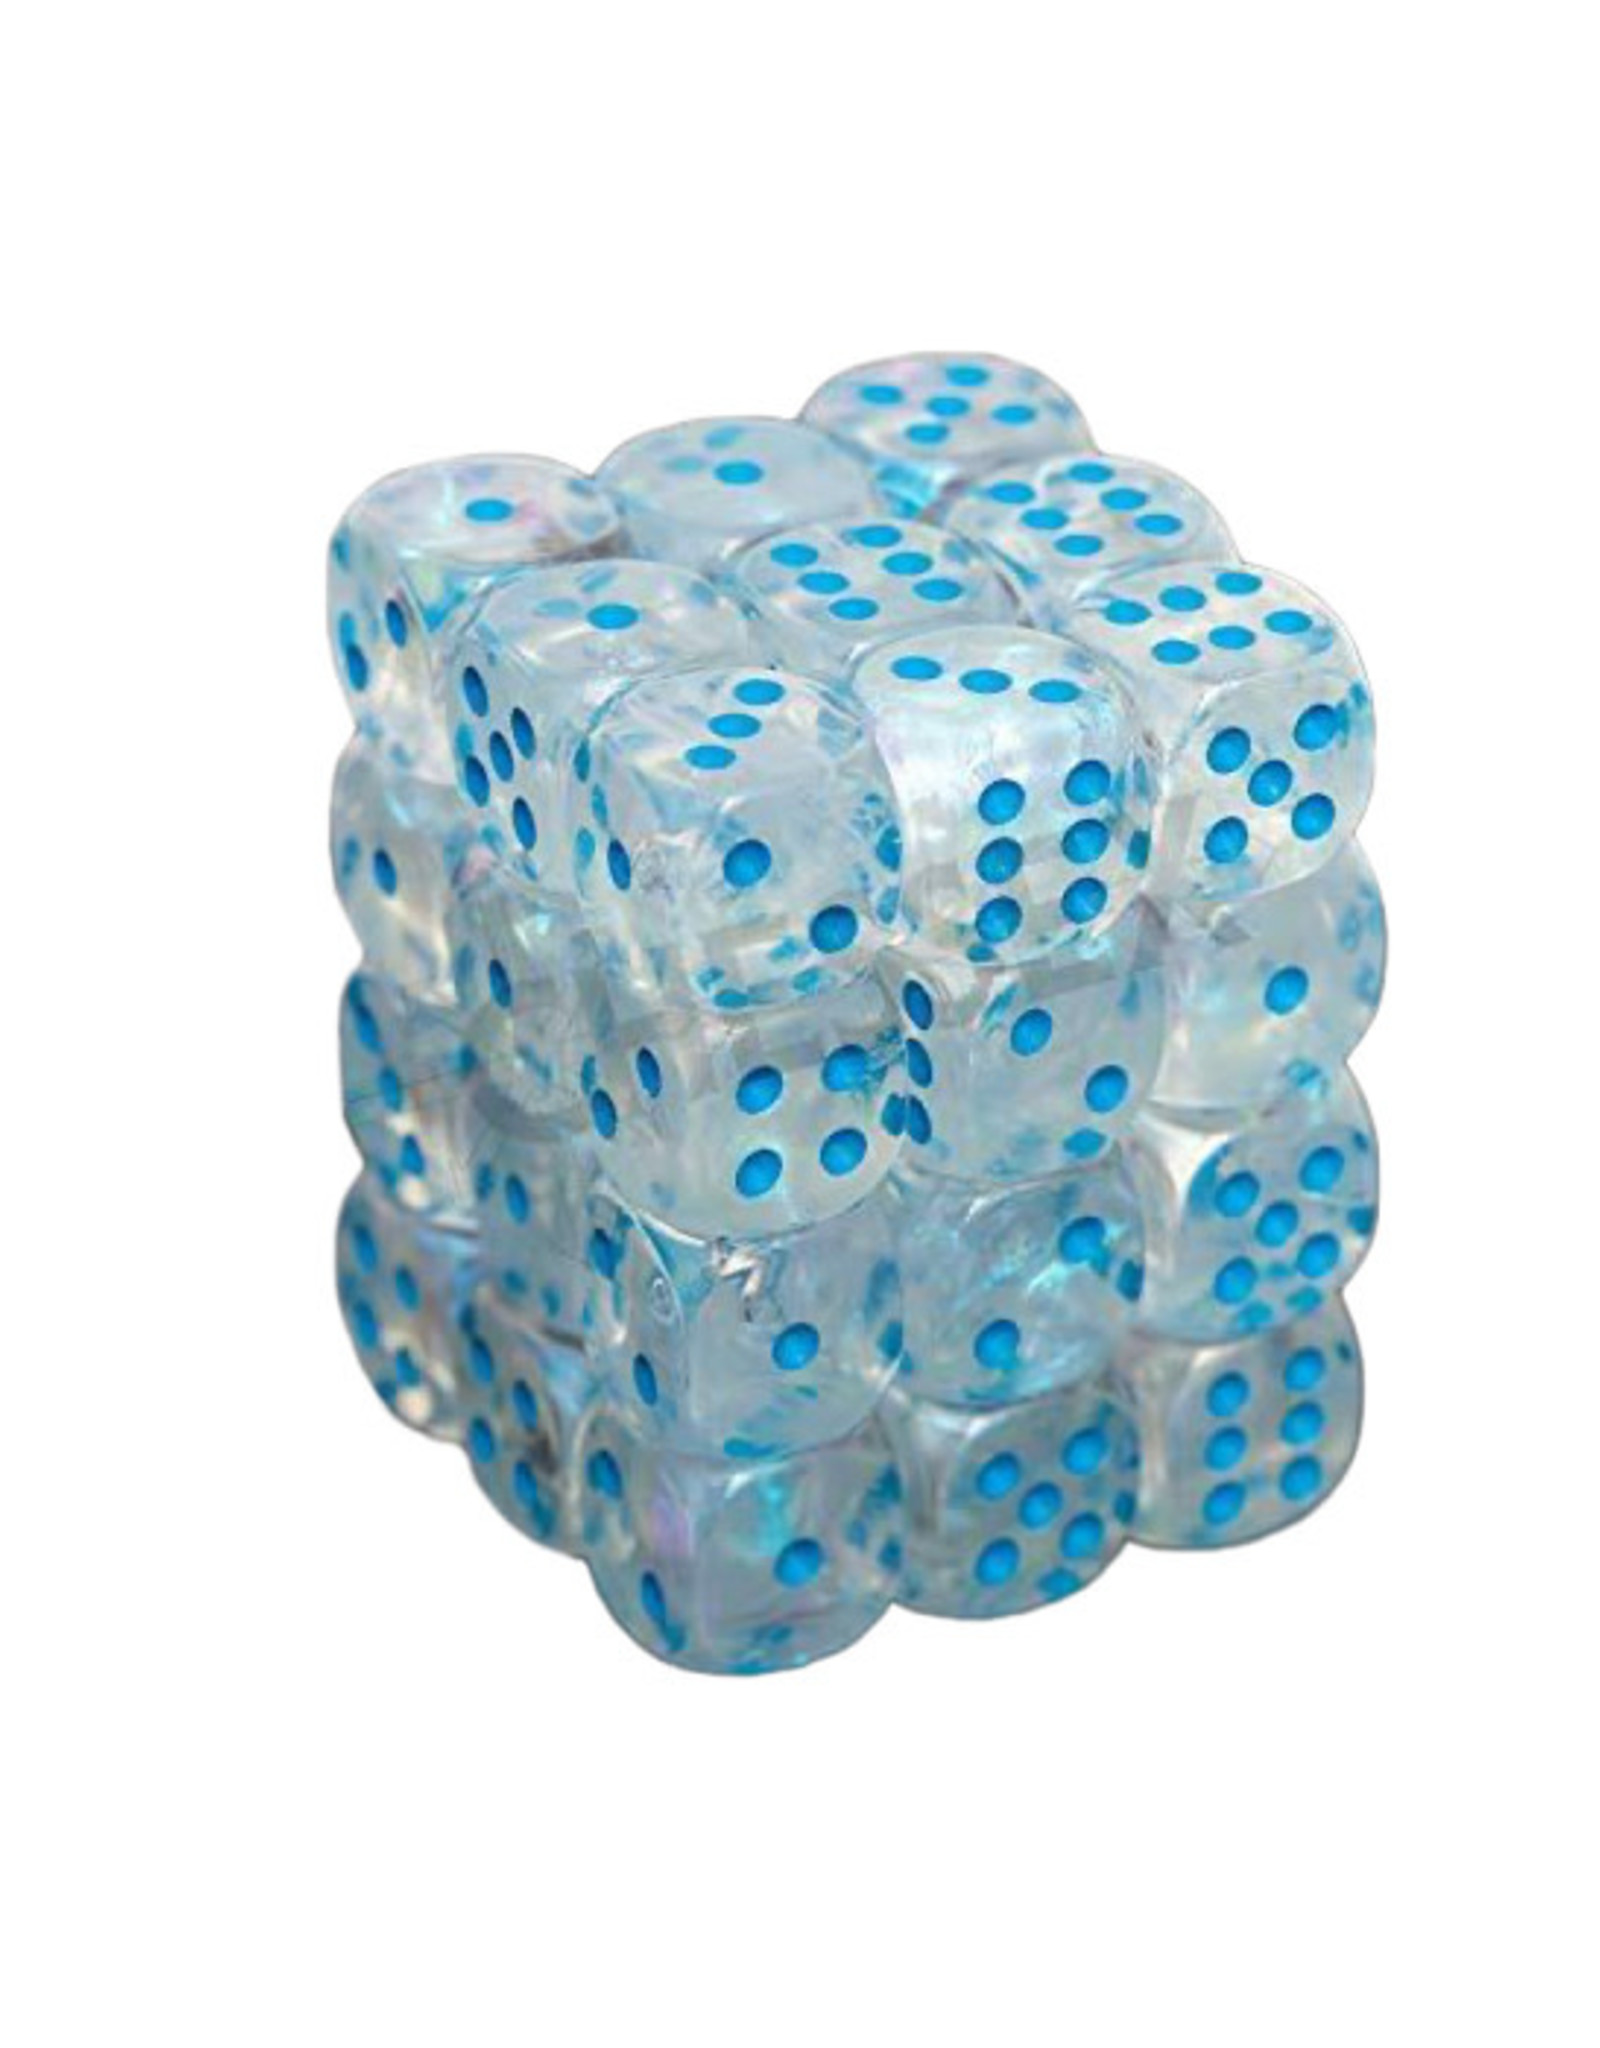 Chessex Chessex: 12mm D6 - Borealis - Icicle w/ Light Blue